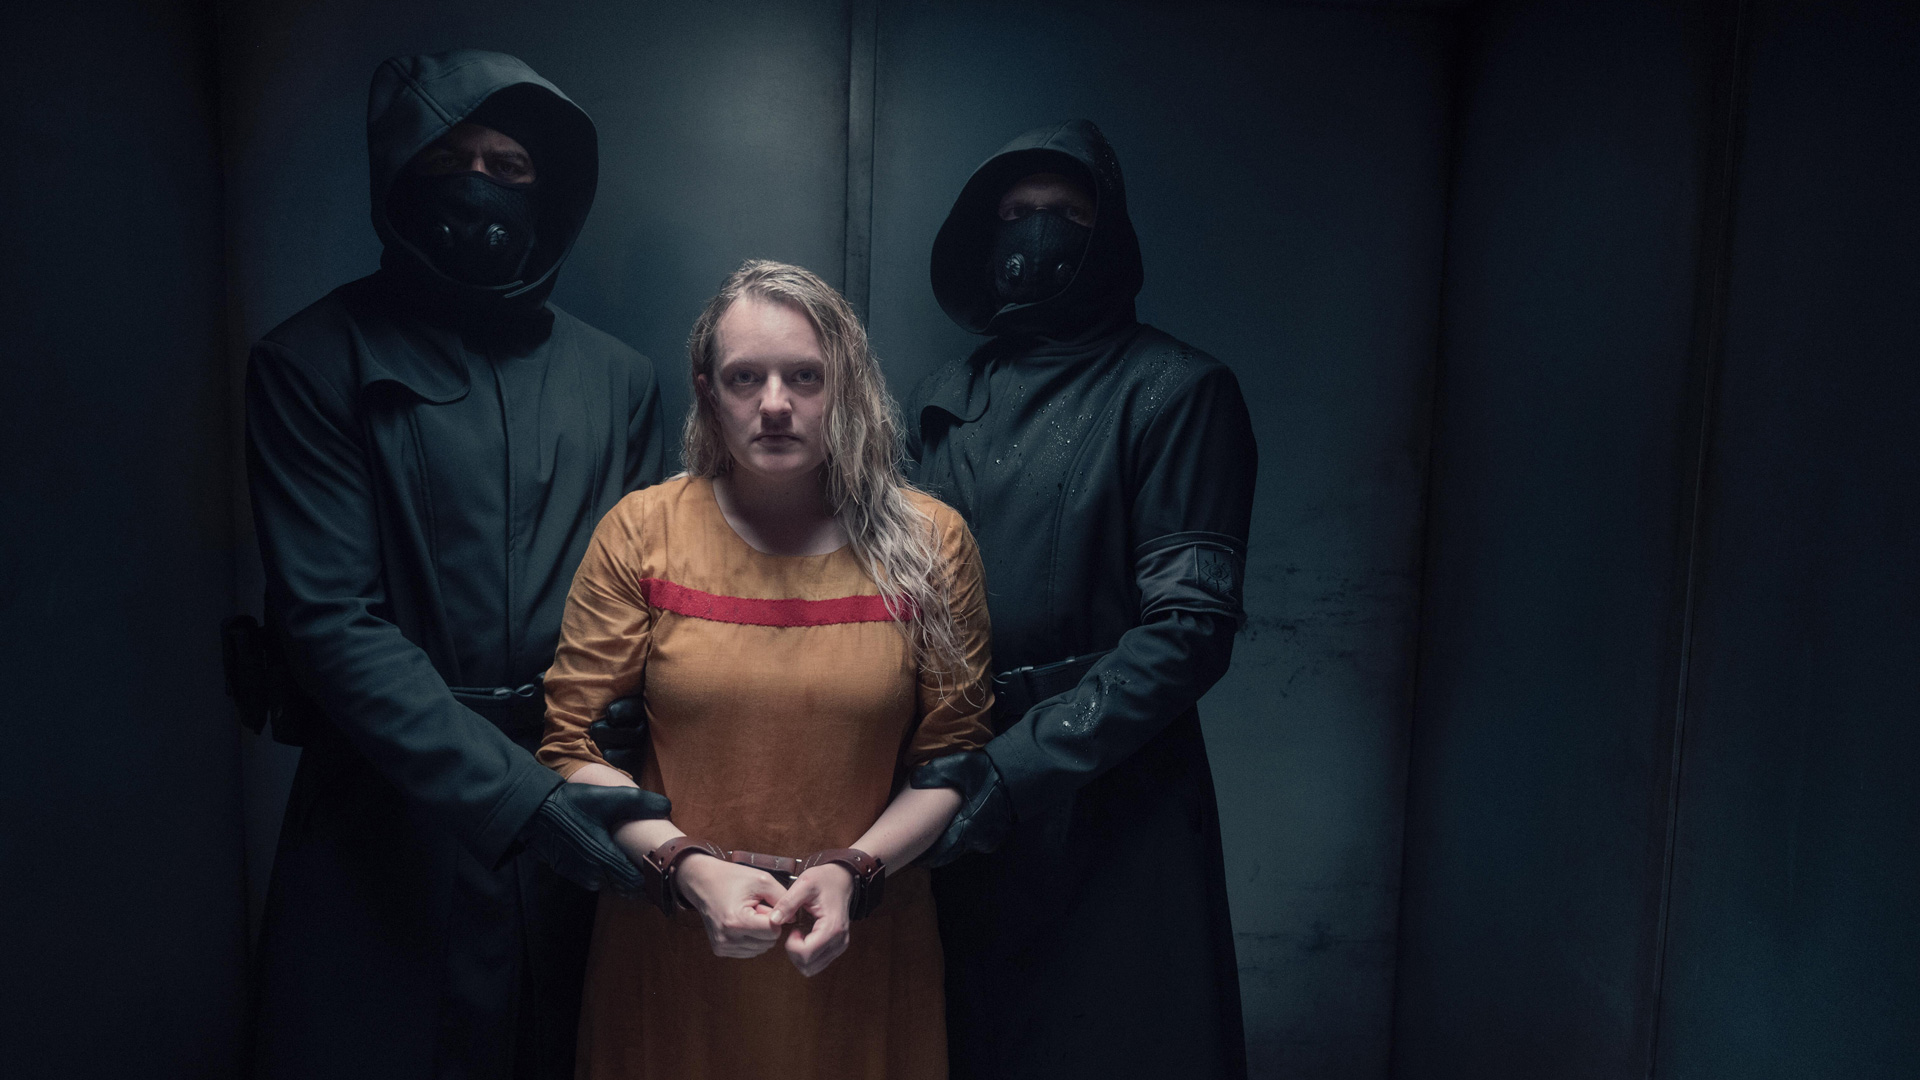 Elisabeth Moss, who plays Offred in The Handmaid's Tale, appears restrained by two hooded figures in a scene from the fourth season of the series.